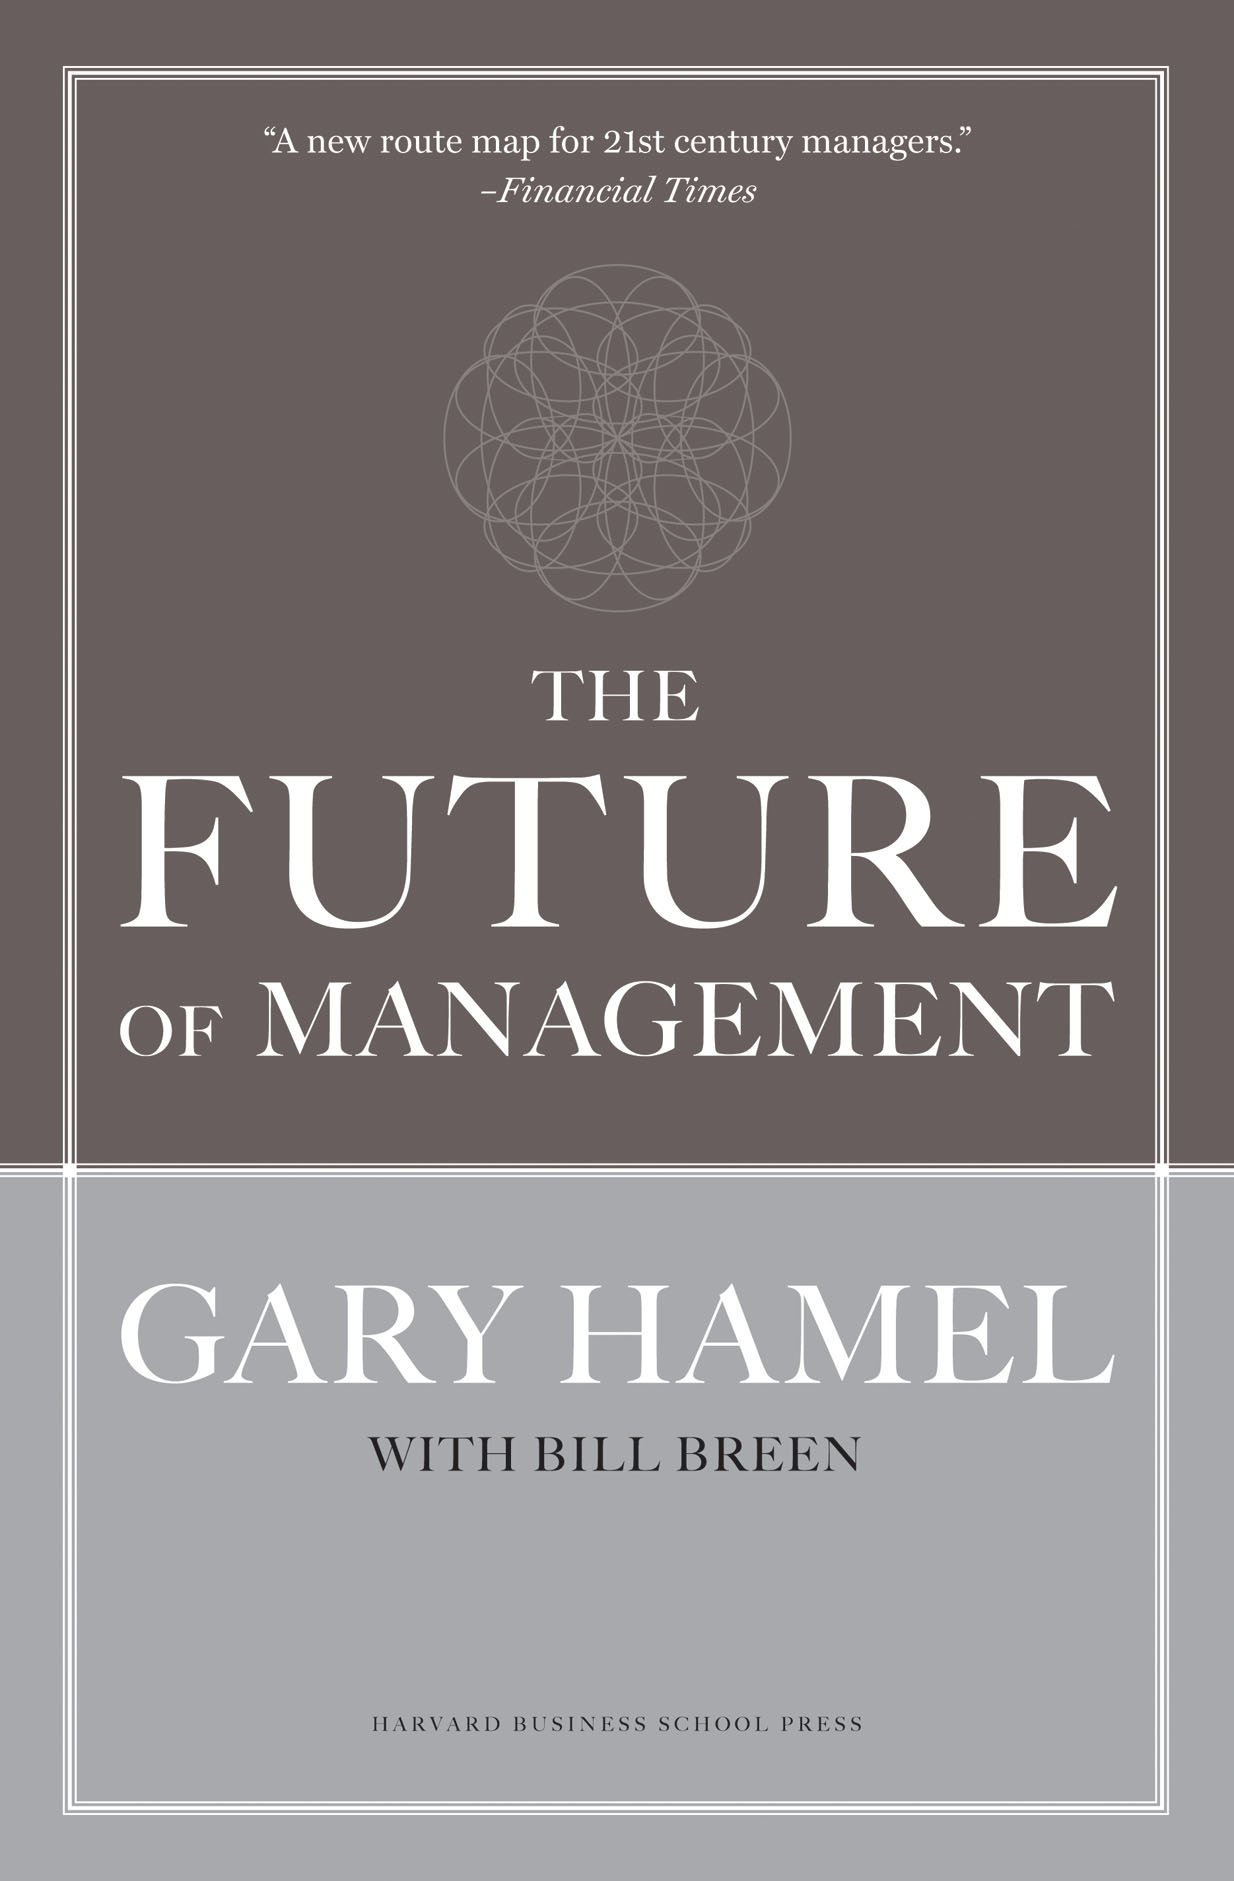 The future of management gary hamel 9781422102503 amazon books fandeluxe Gallery